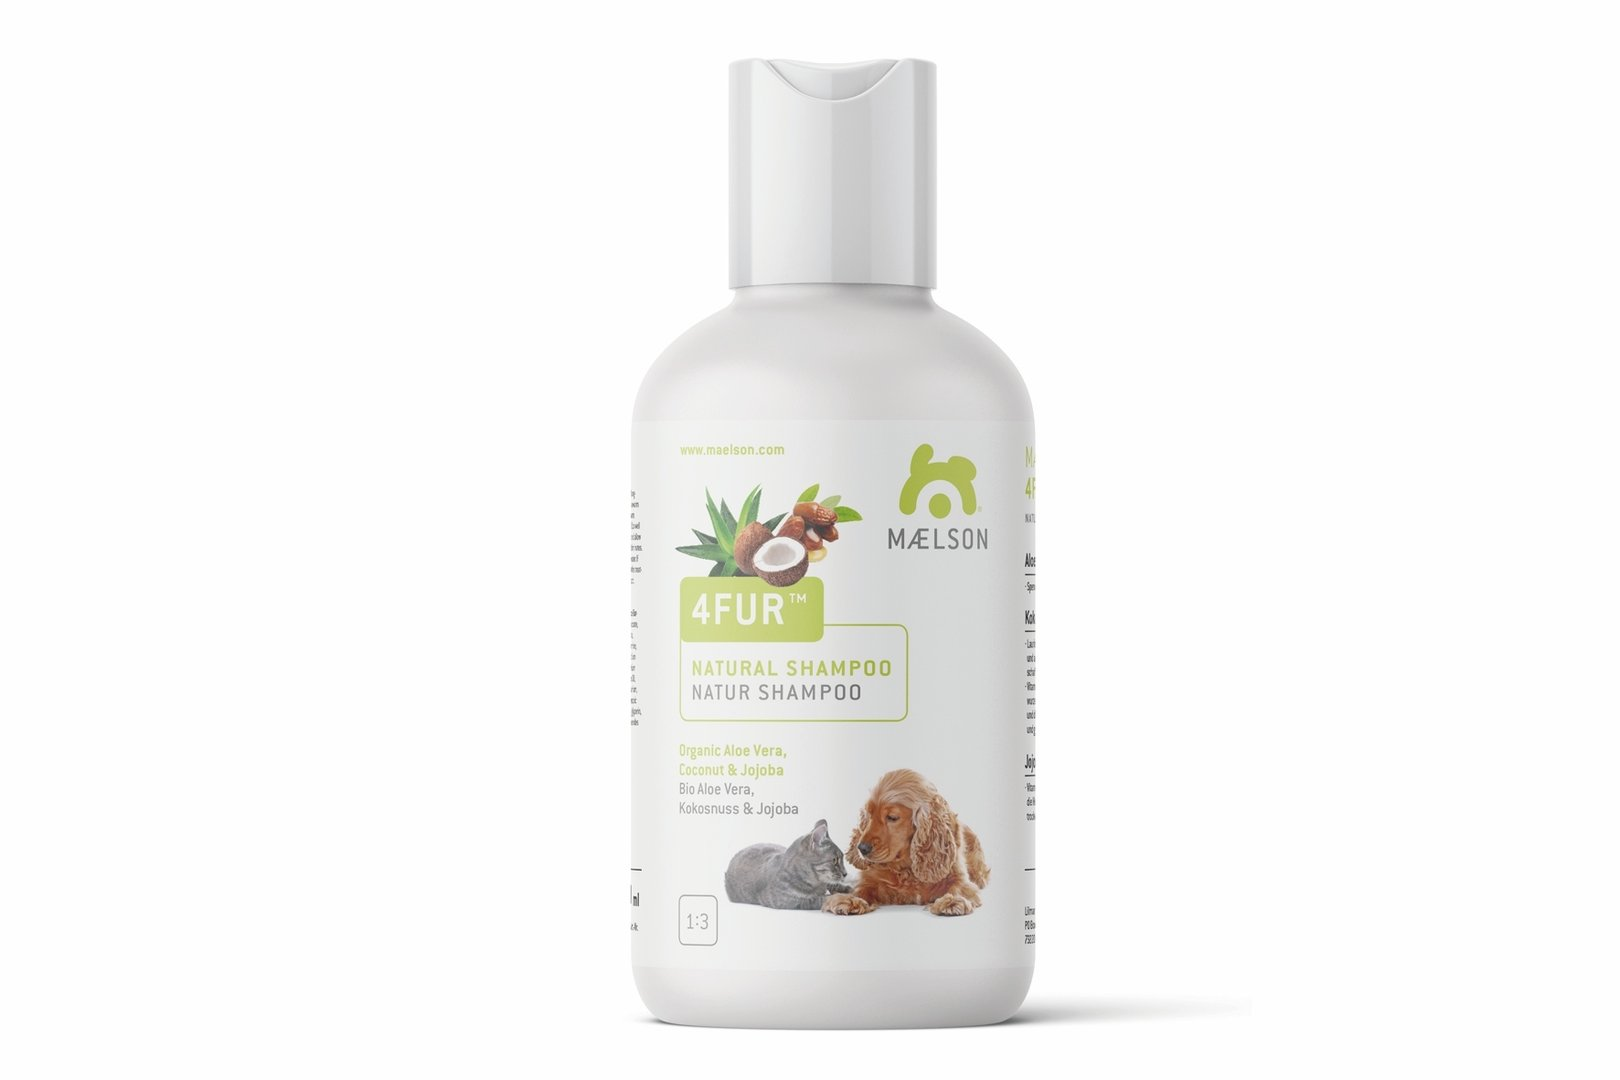 4Fur™ Kokosnuss & Jojoba, 250 ml, 5 Ltr.